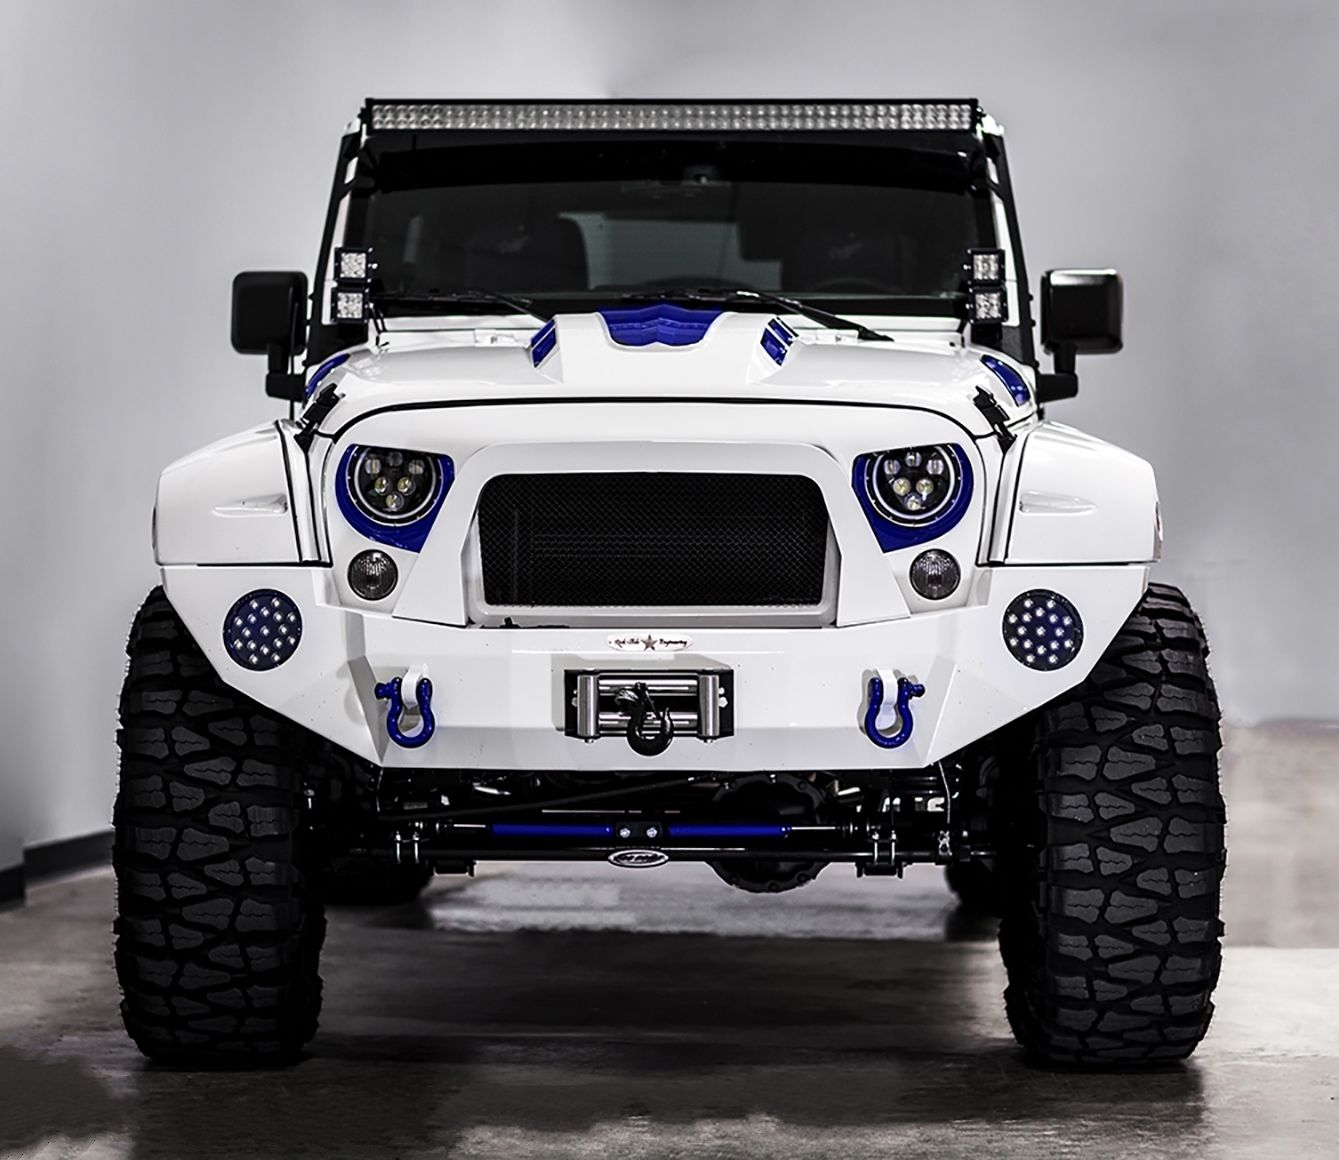 Jeep Rubicon 2017 Tuning >> This Stormtrooper Of A Jeep Wrangler Is 60 000 Worth Of Overkill